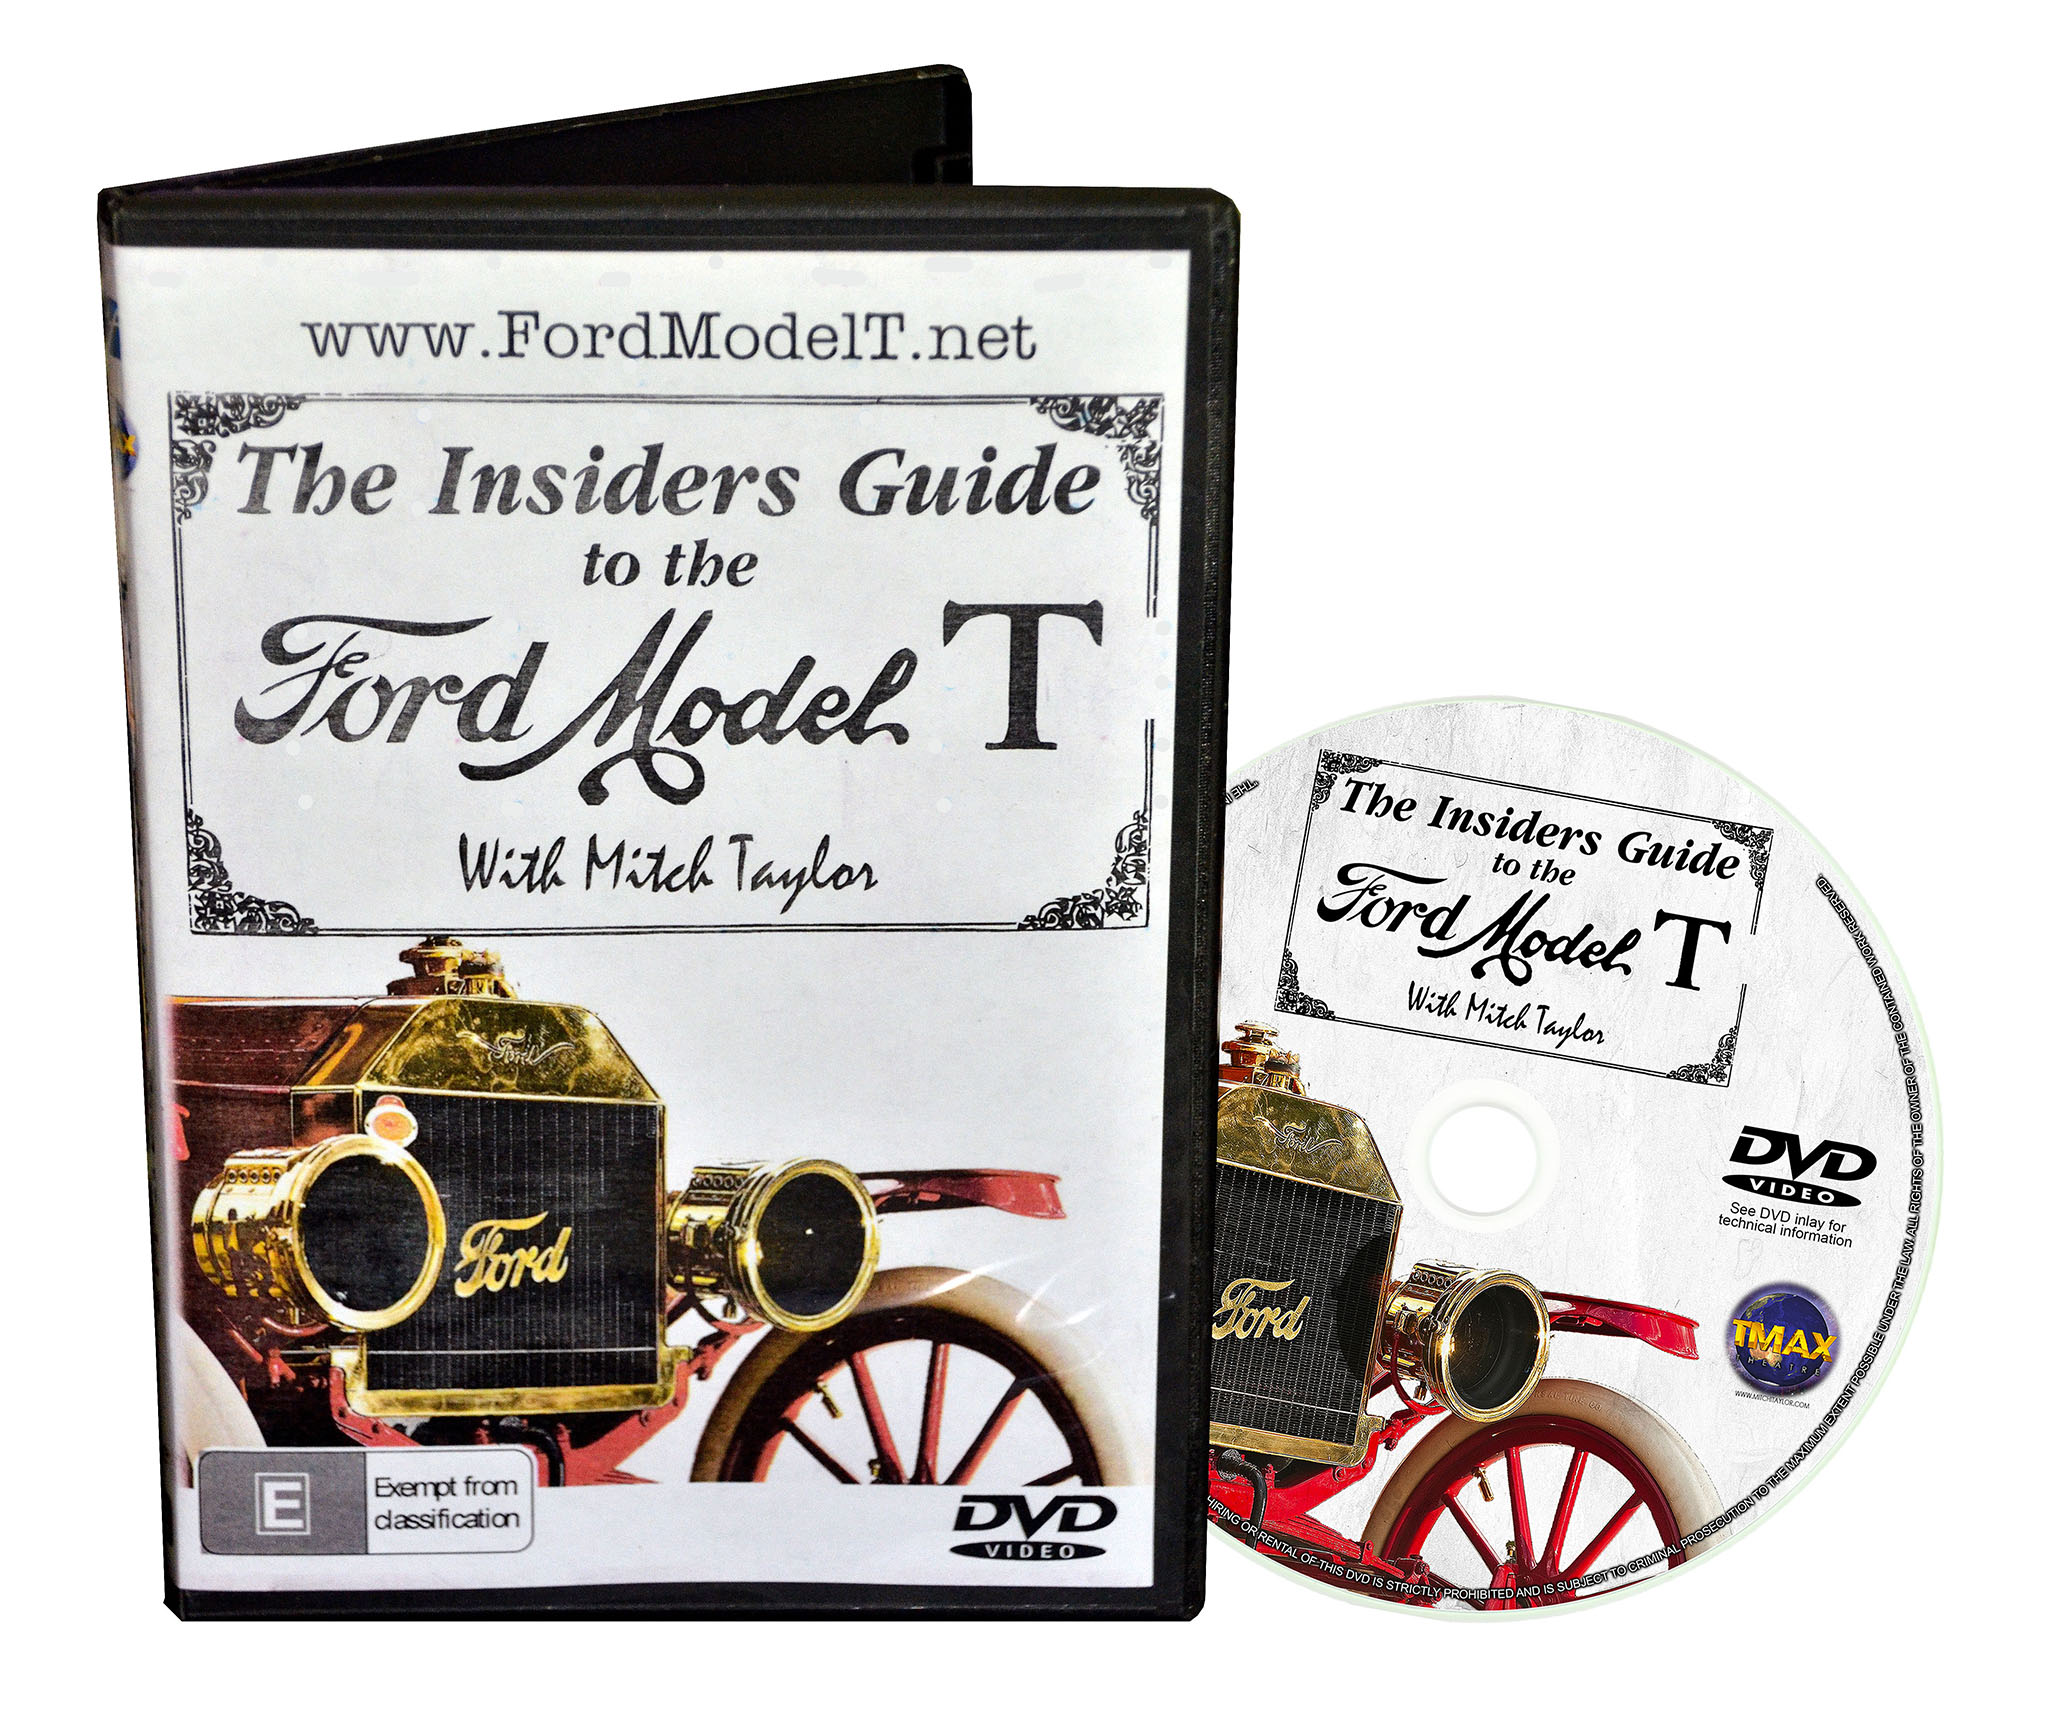 The Insiders Guide to the Ford Model T - DVD - How to Drive a Model T Ford